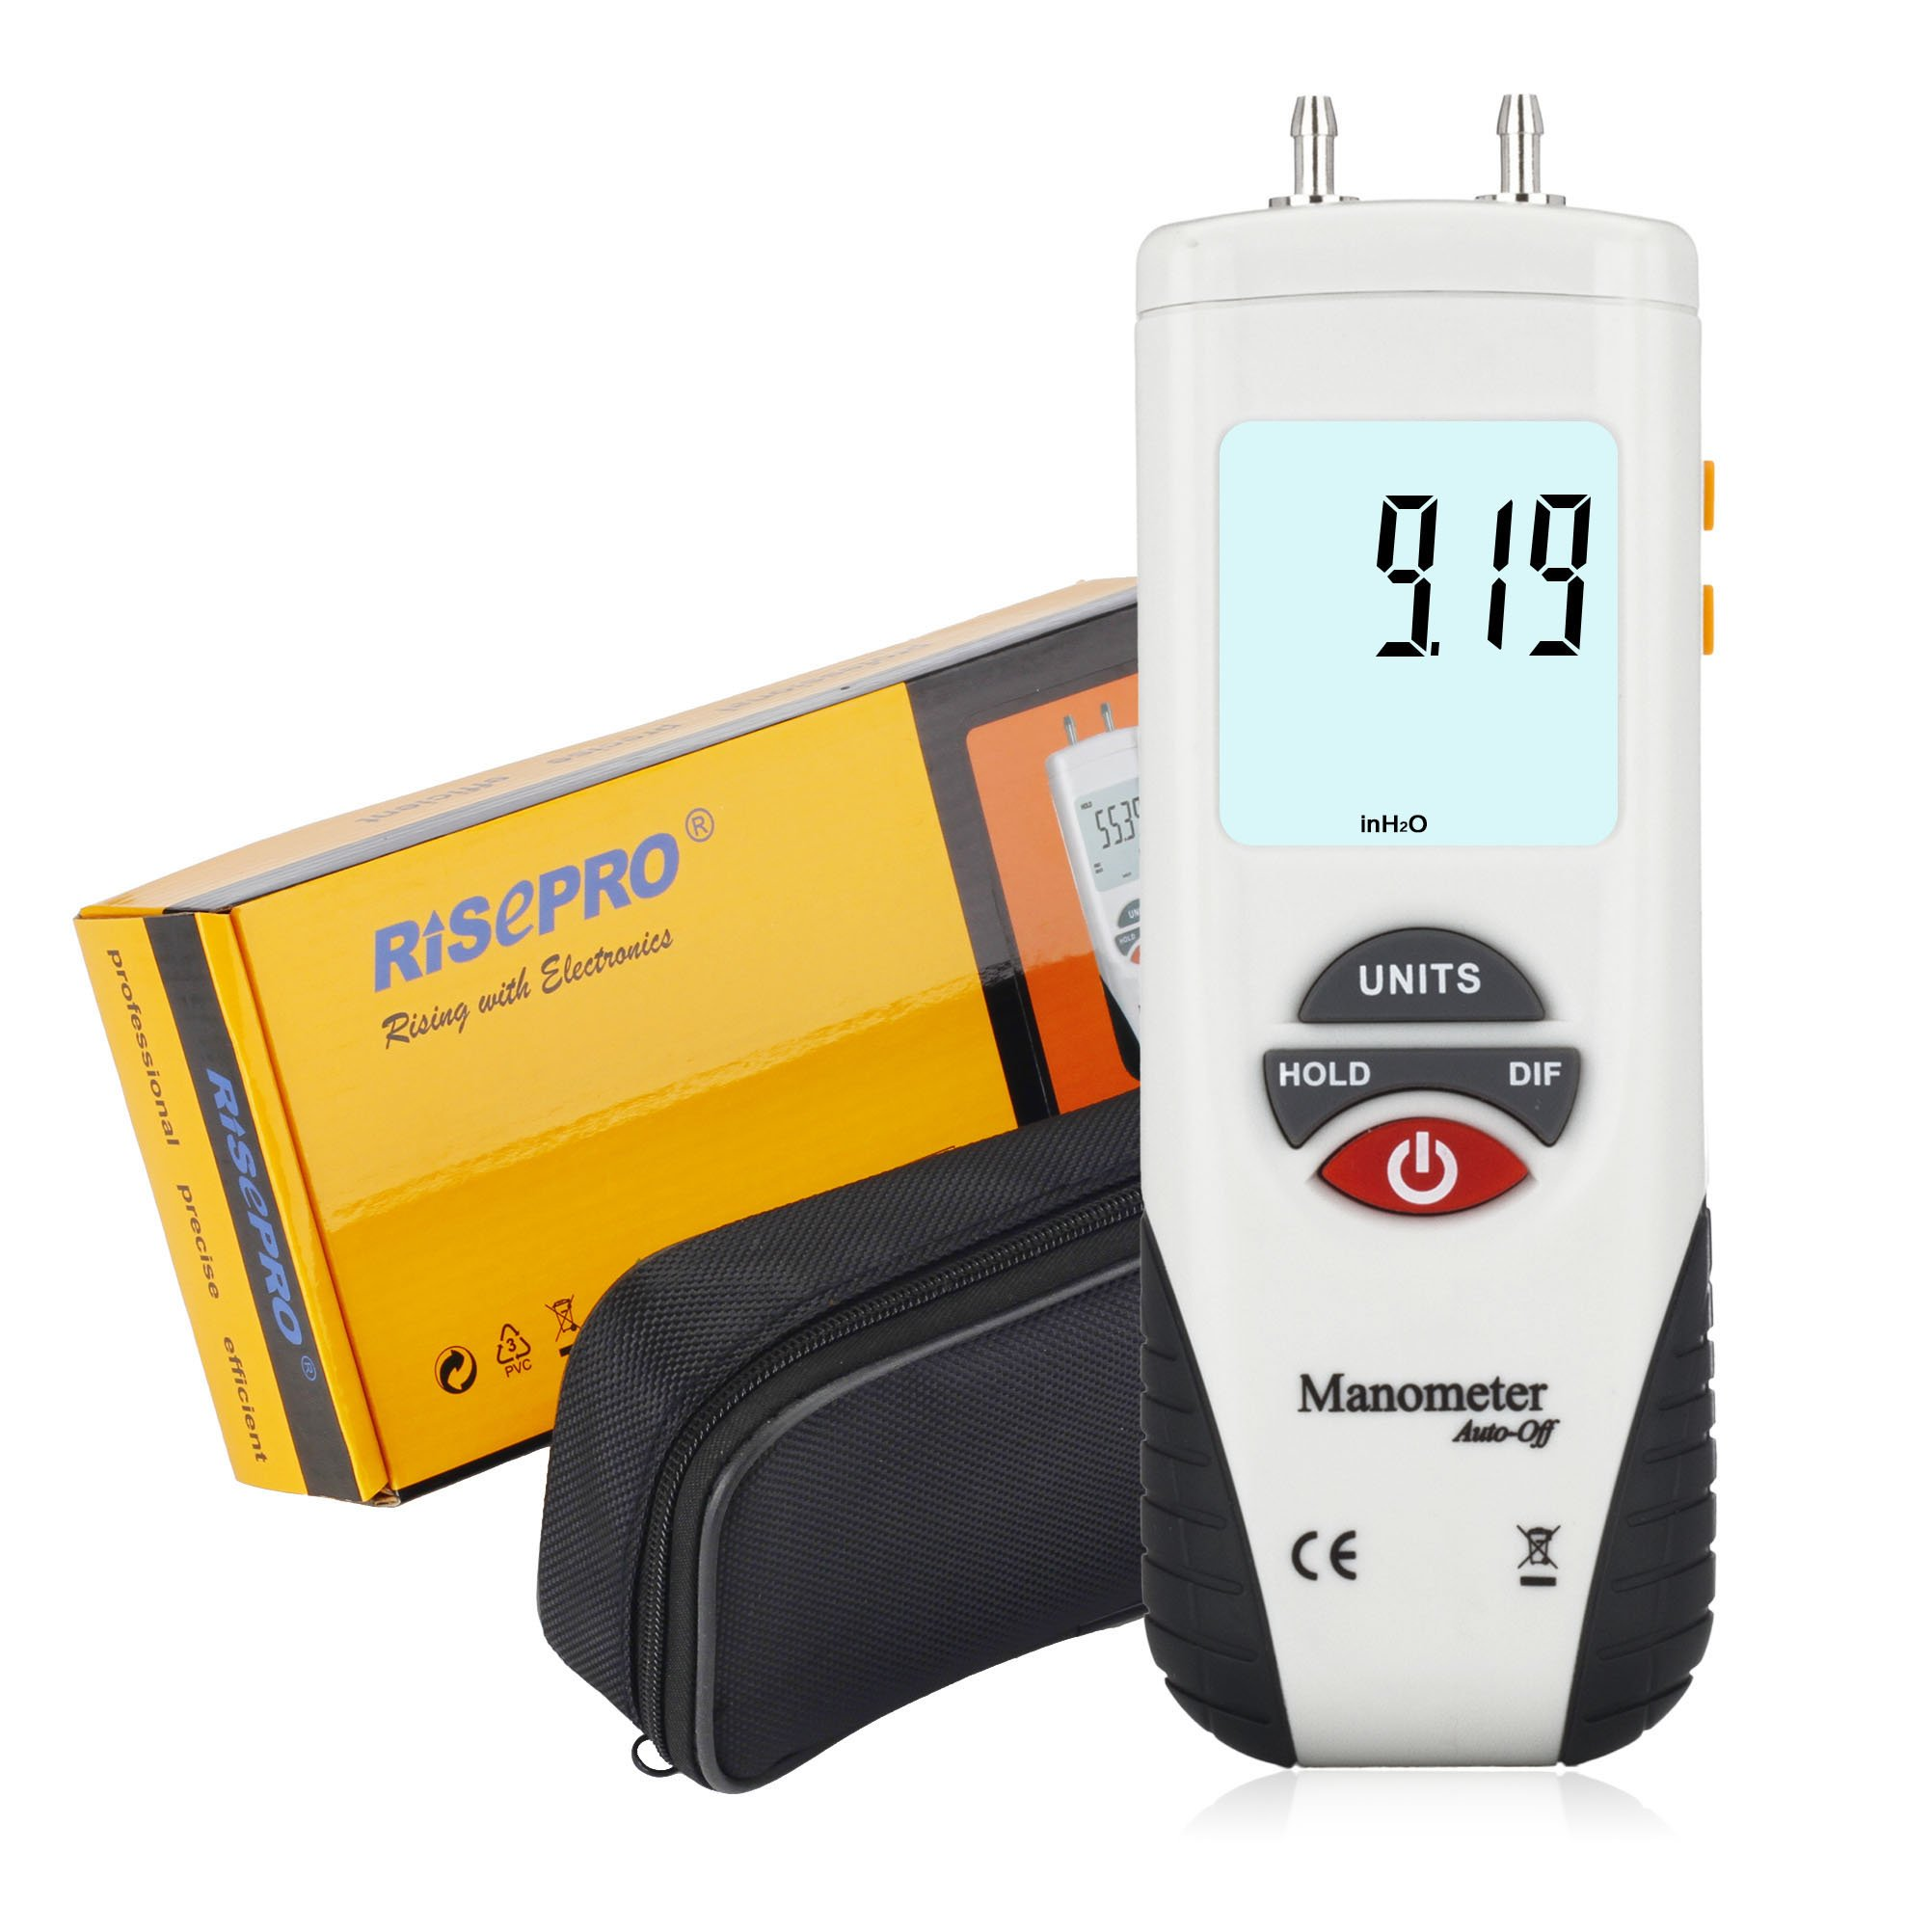 FOSHIO FT168 Digital Manometer Air Pressure Meter HVAC Gas Pressure Tester with Large LCD Display